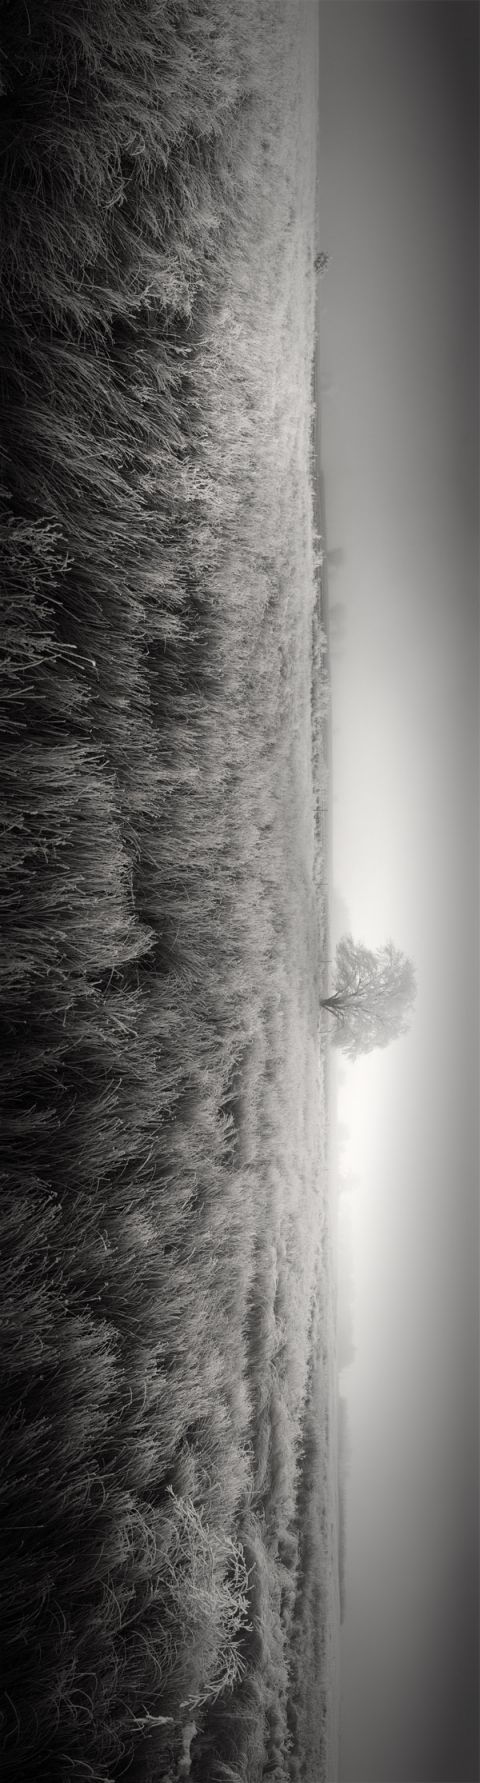 12 photos stitched together. I like the simplicity of this photo. It's as if I'm in that field looking at the tree.